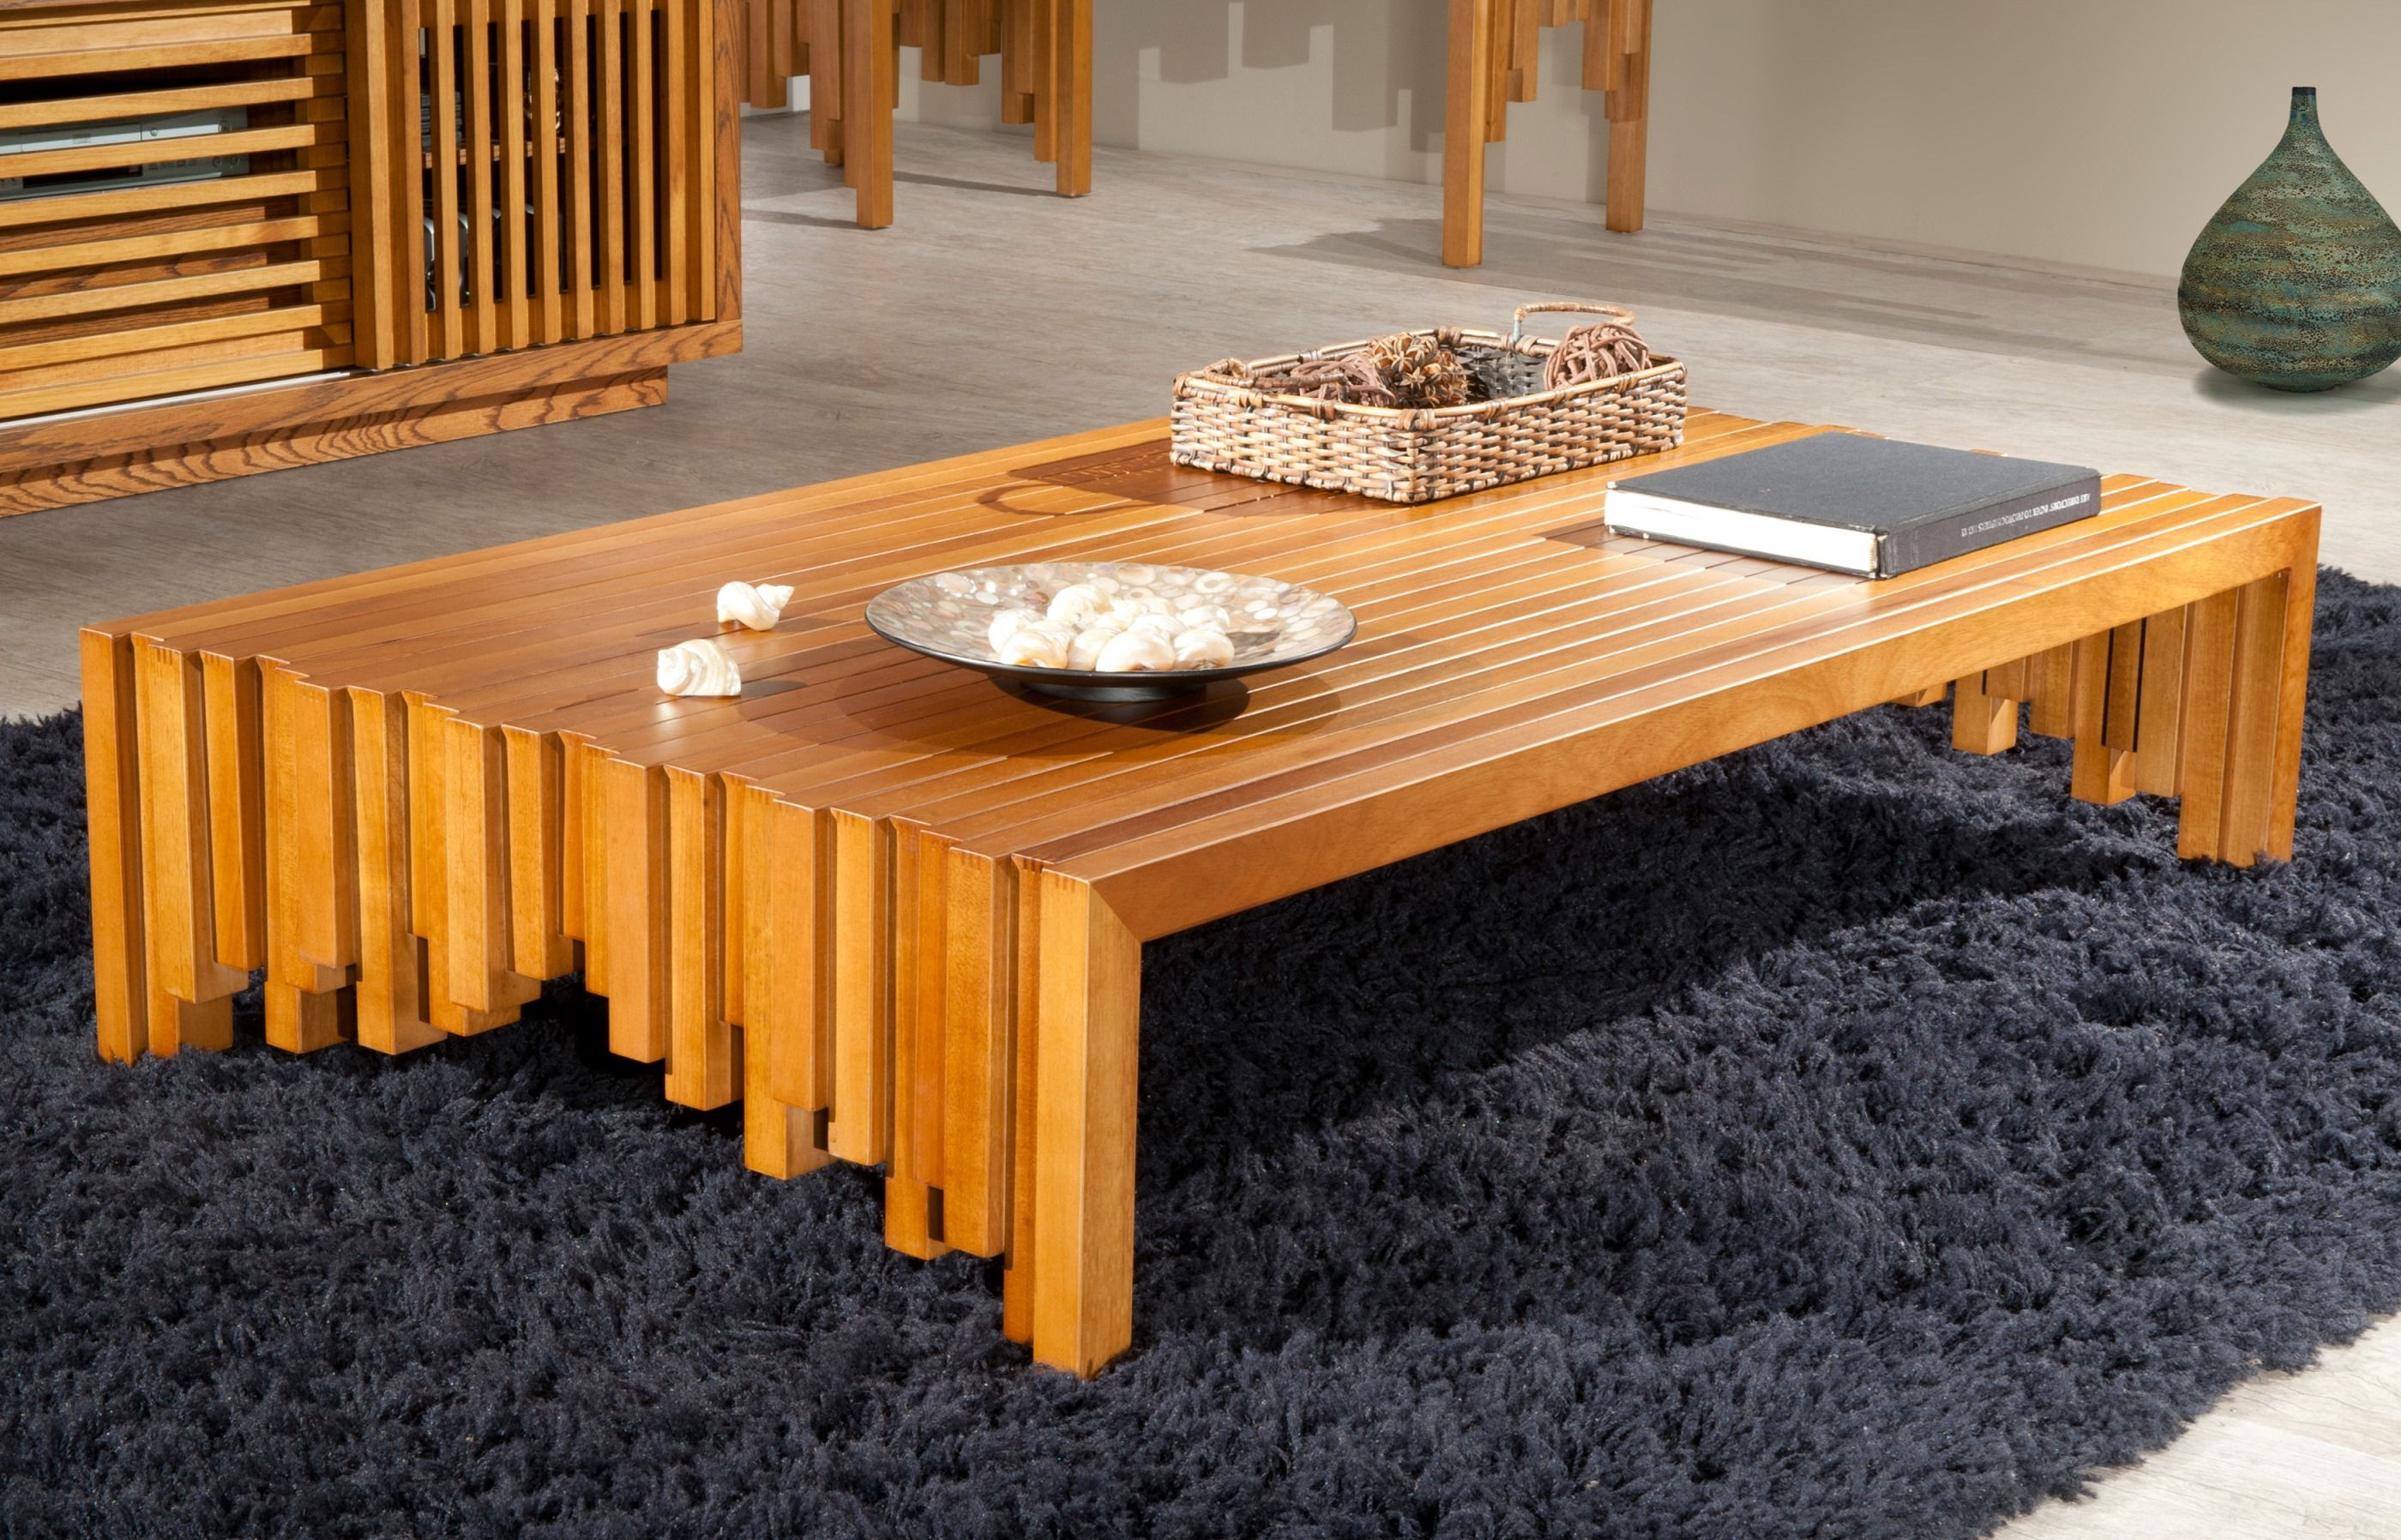 Diy woodworking Coffee Table I like to flip through the pictures for